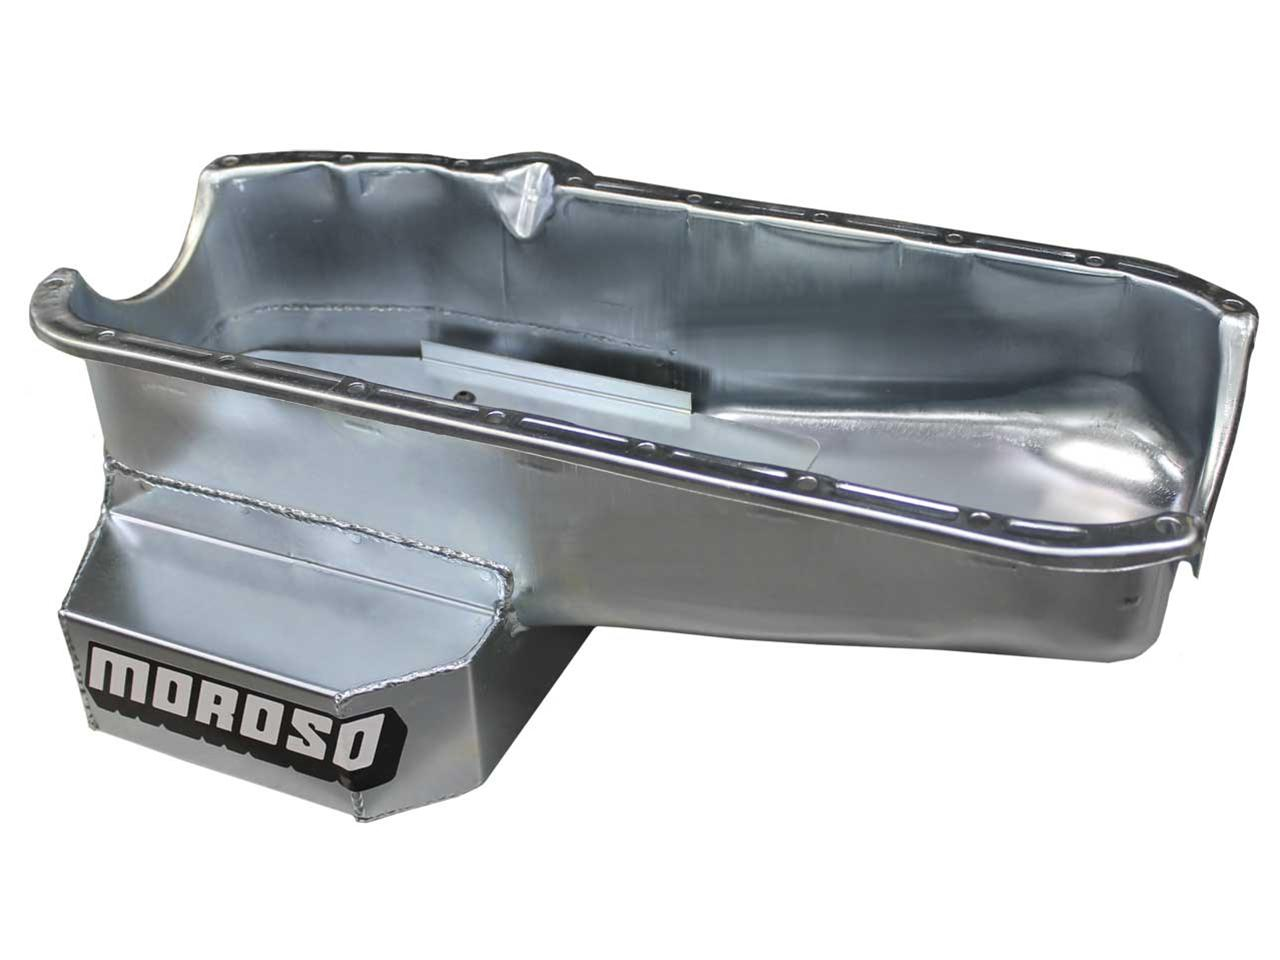 Picture of Moroso SBC Claimer Pan with Drive Side Dipstick